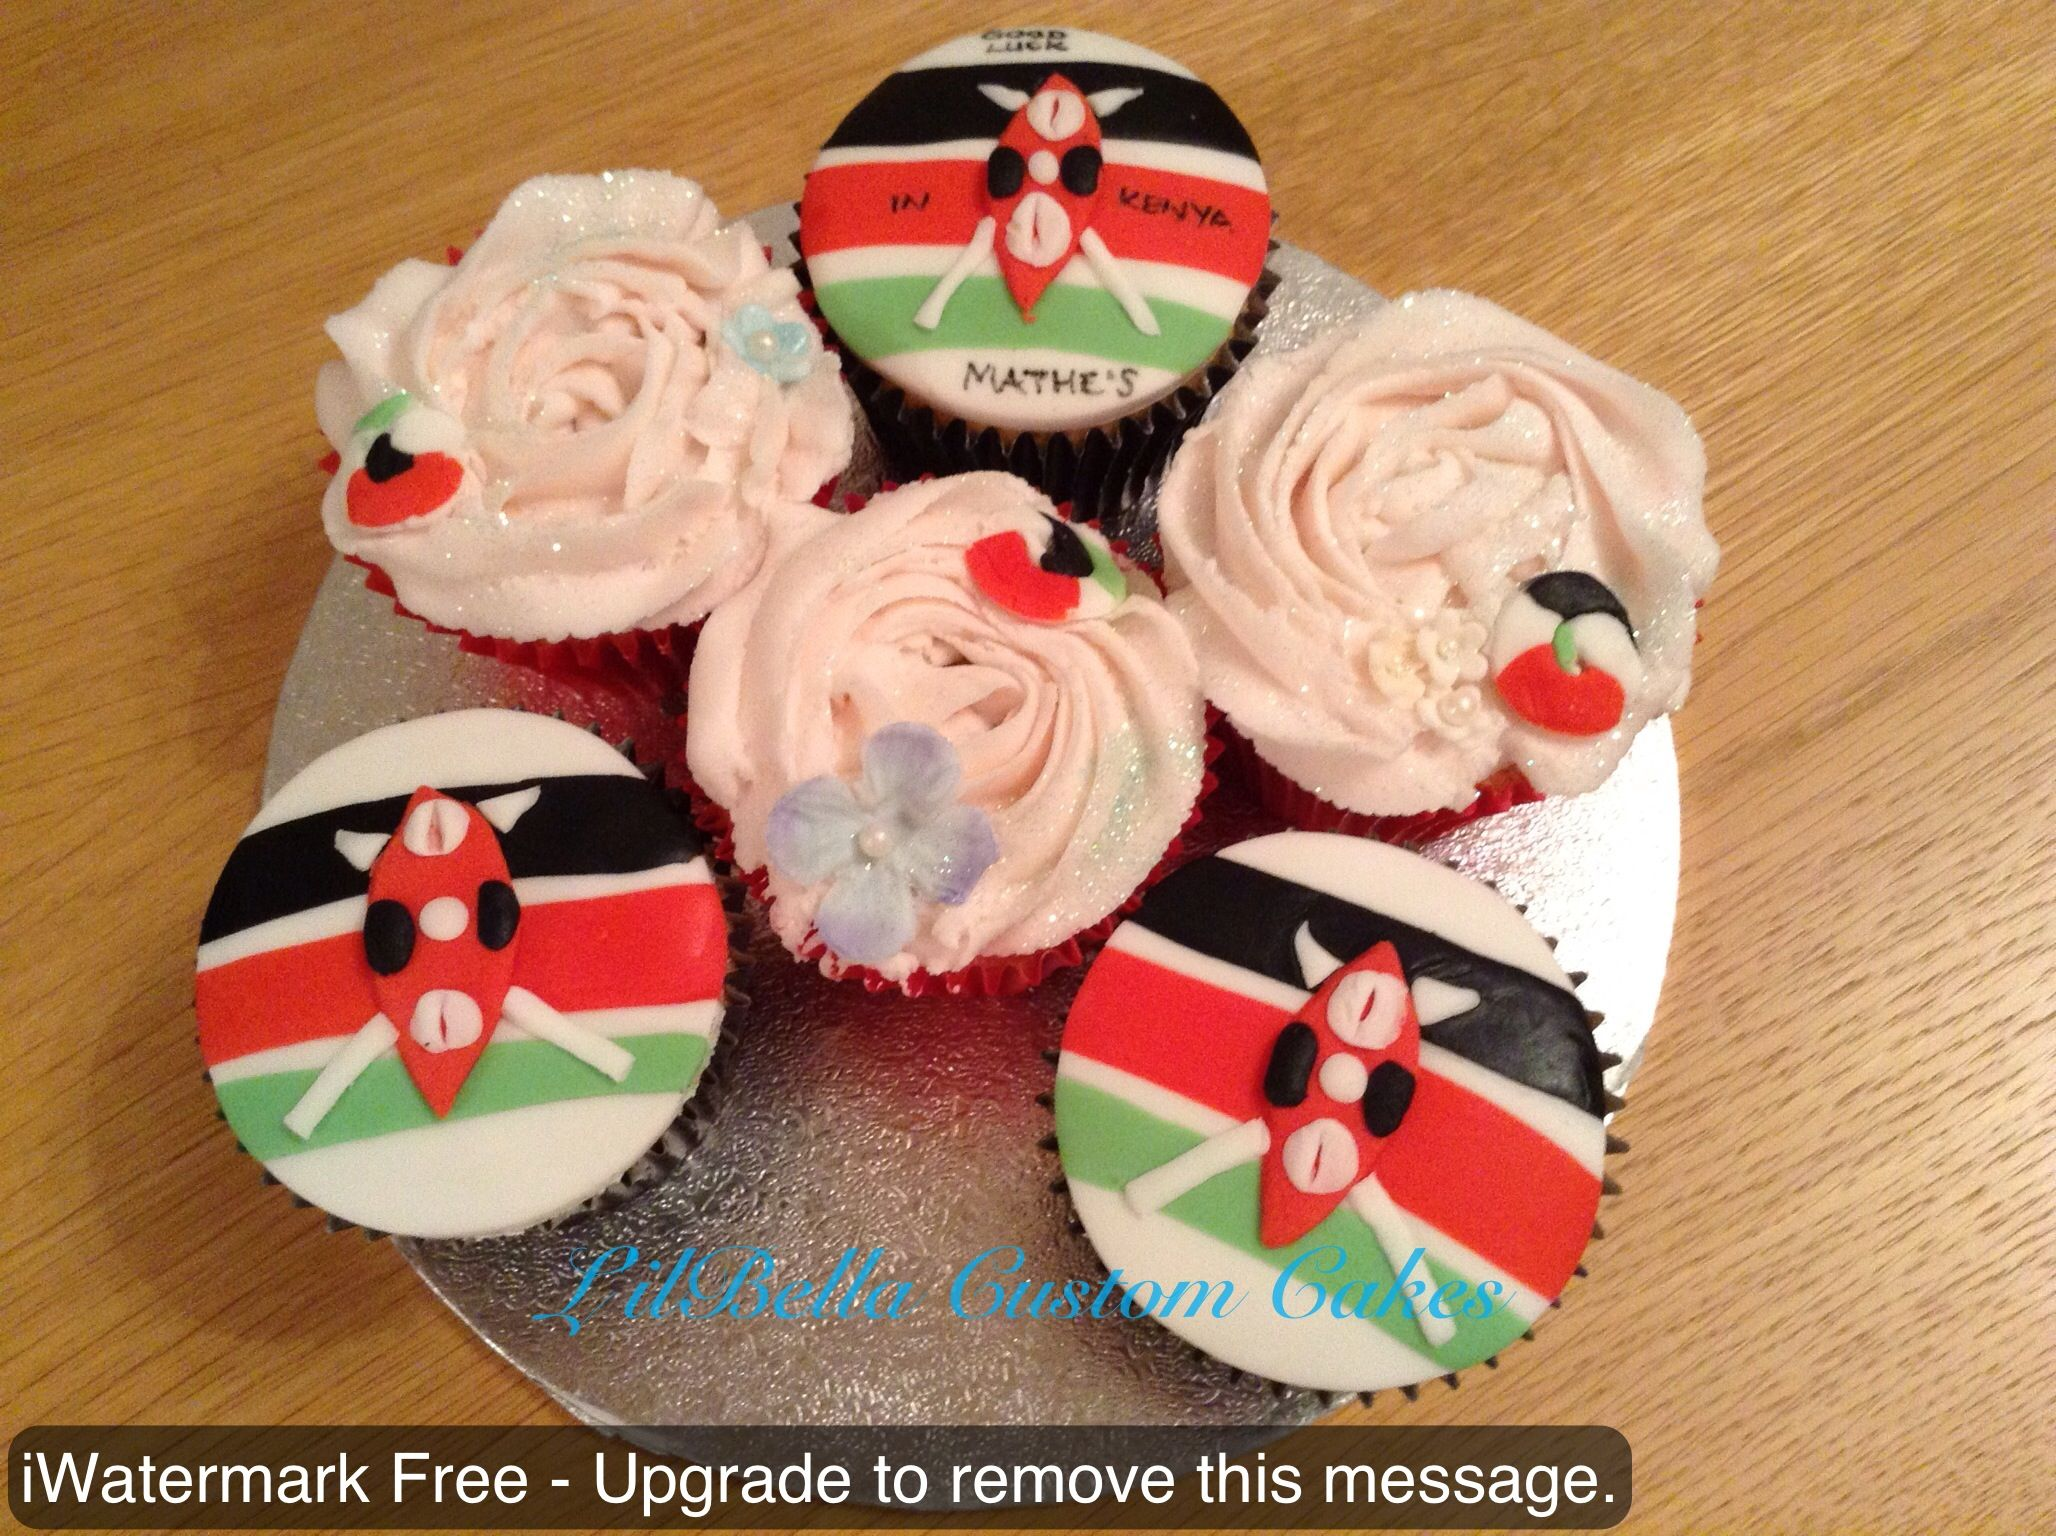 Kenyan Bon Voyage Cupcakes For The Lovely Mathe S Cupcakes